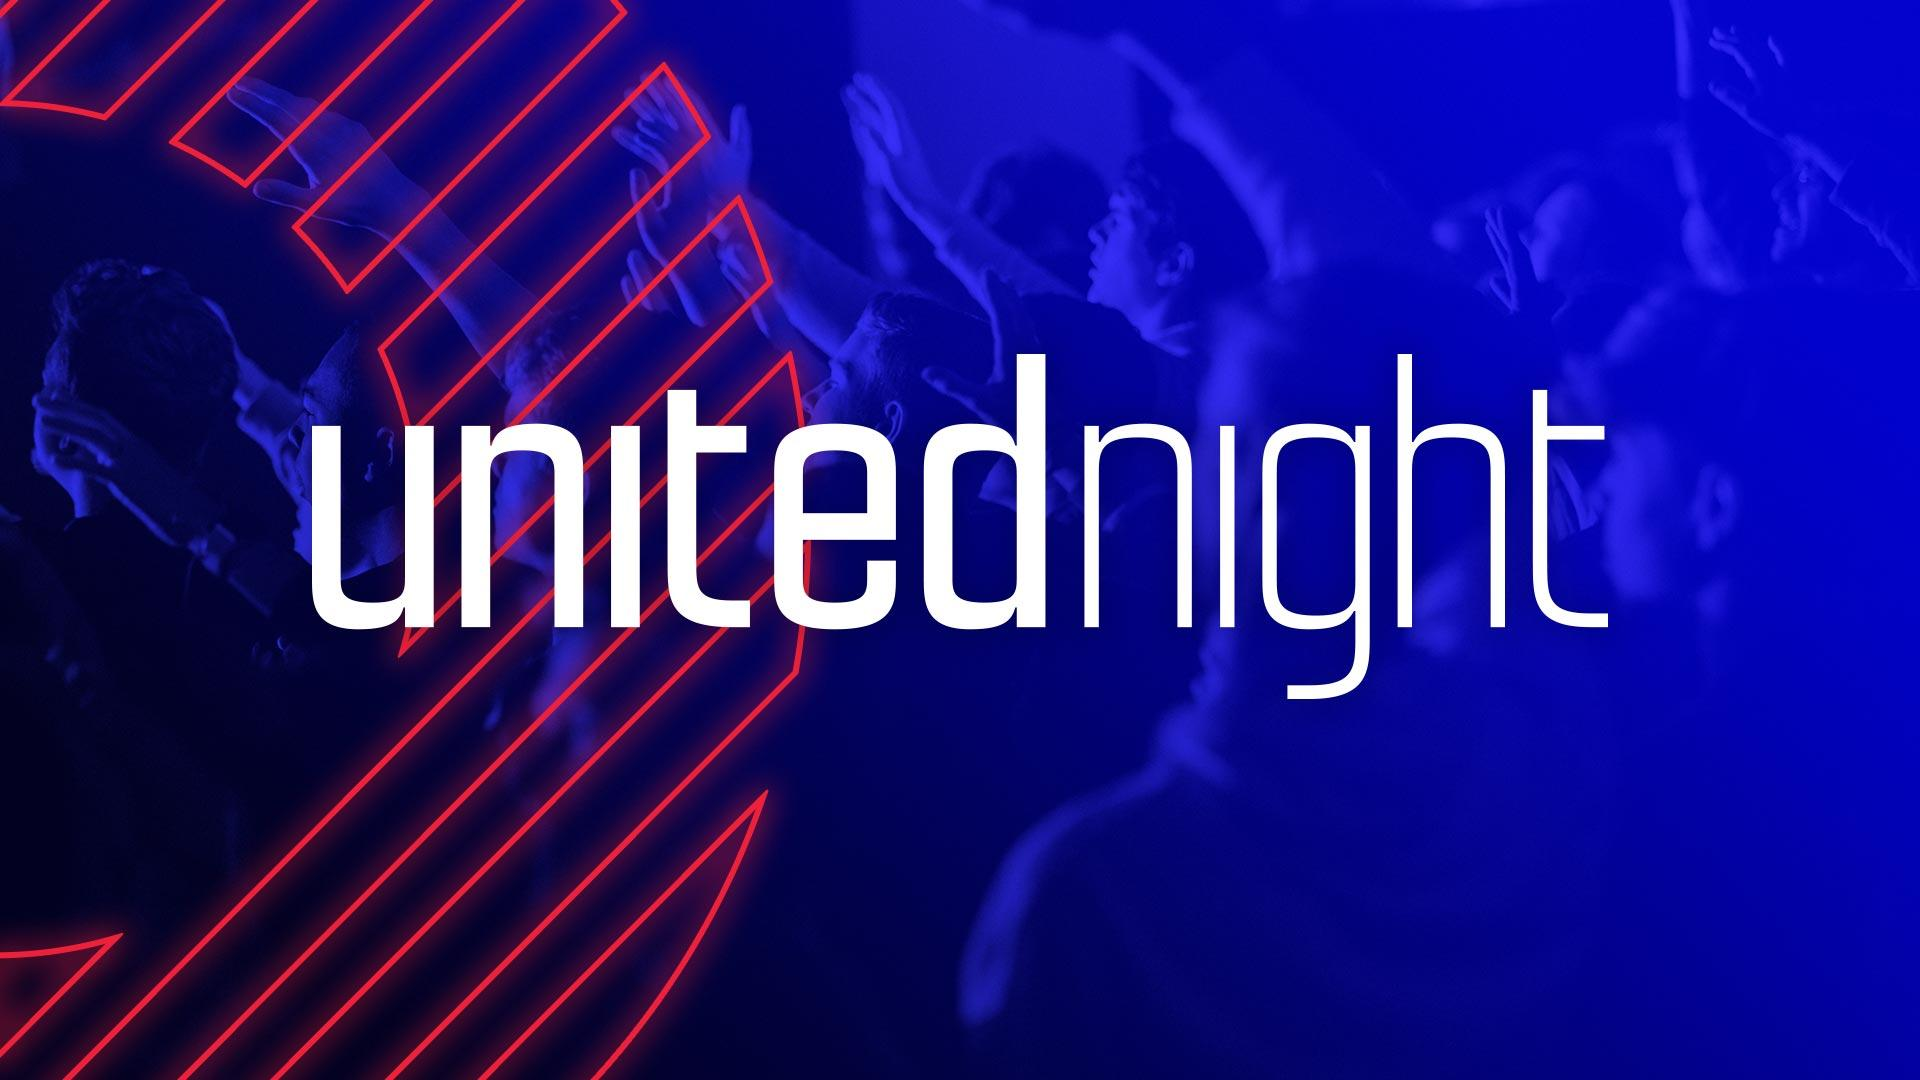 United Night Wide